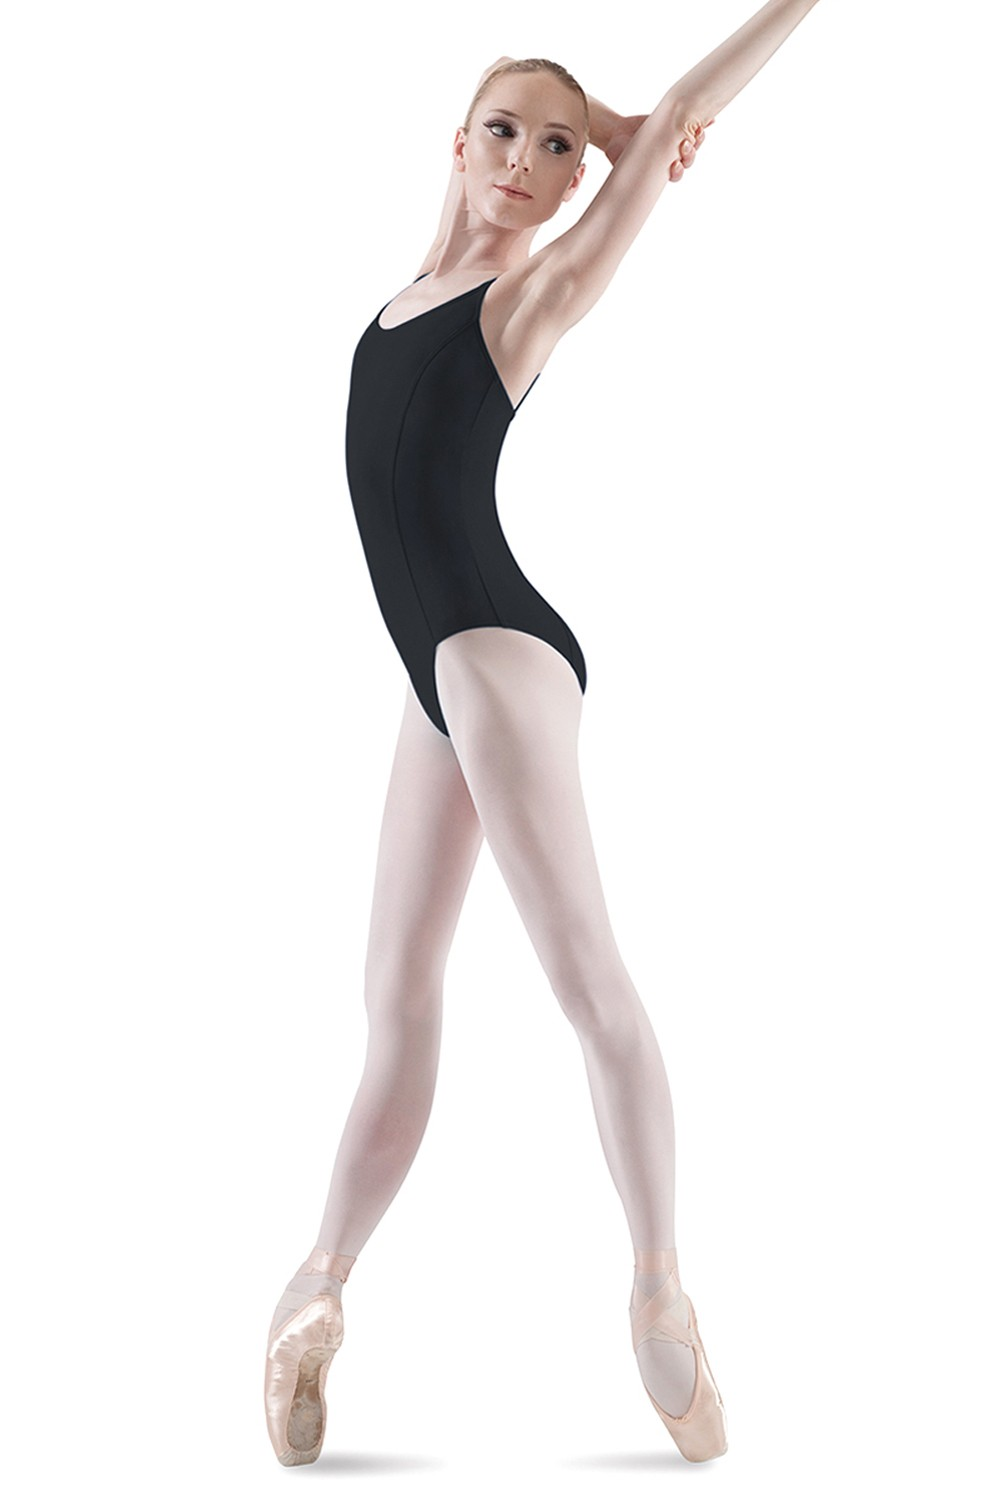 Playa Women's Dance Leotards